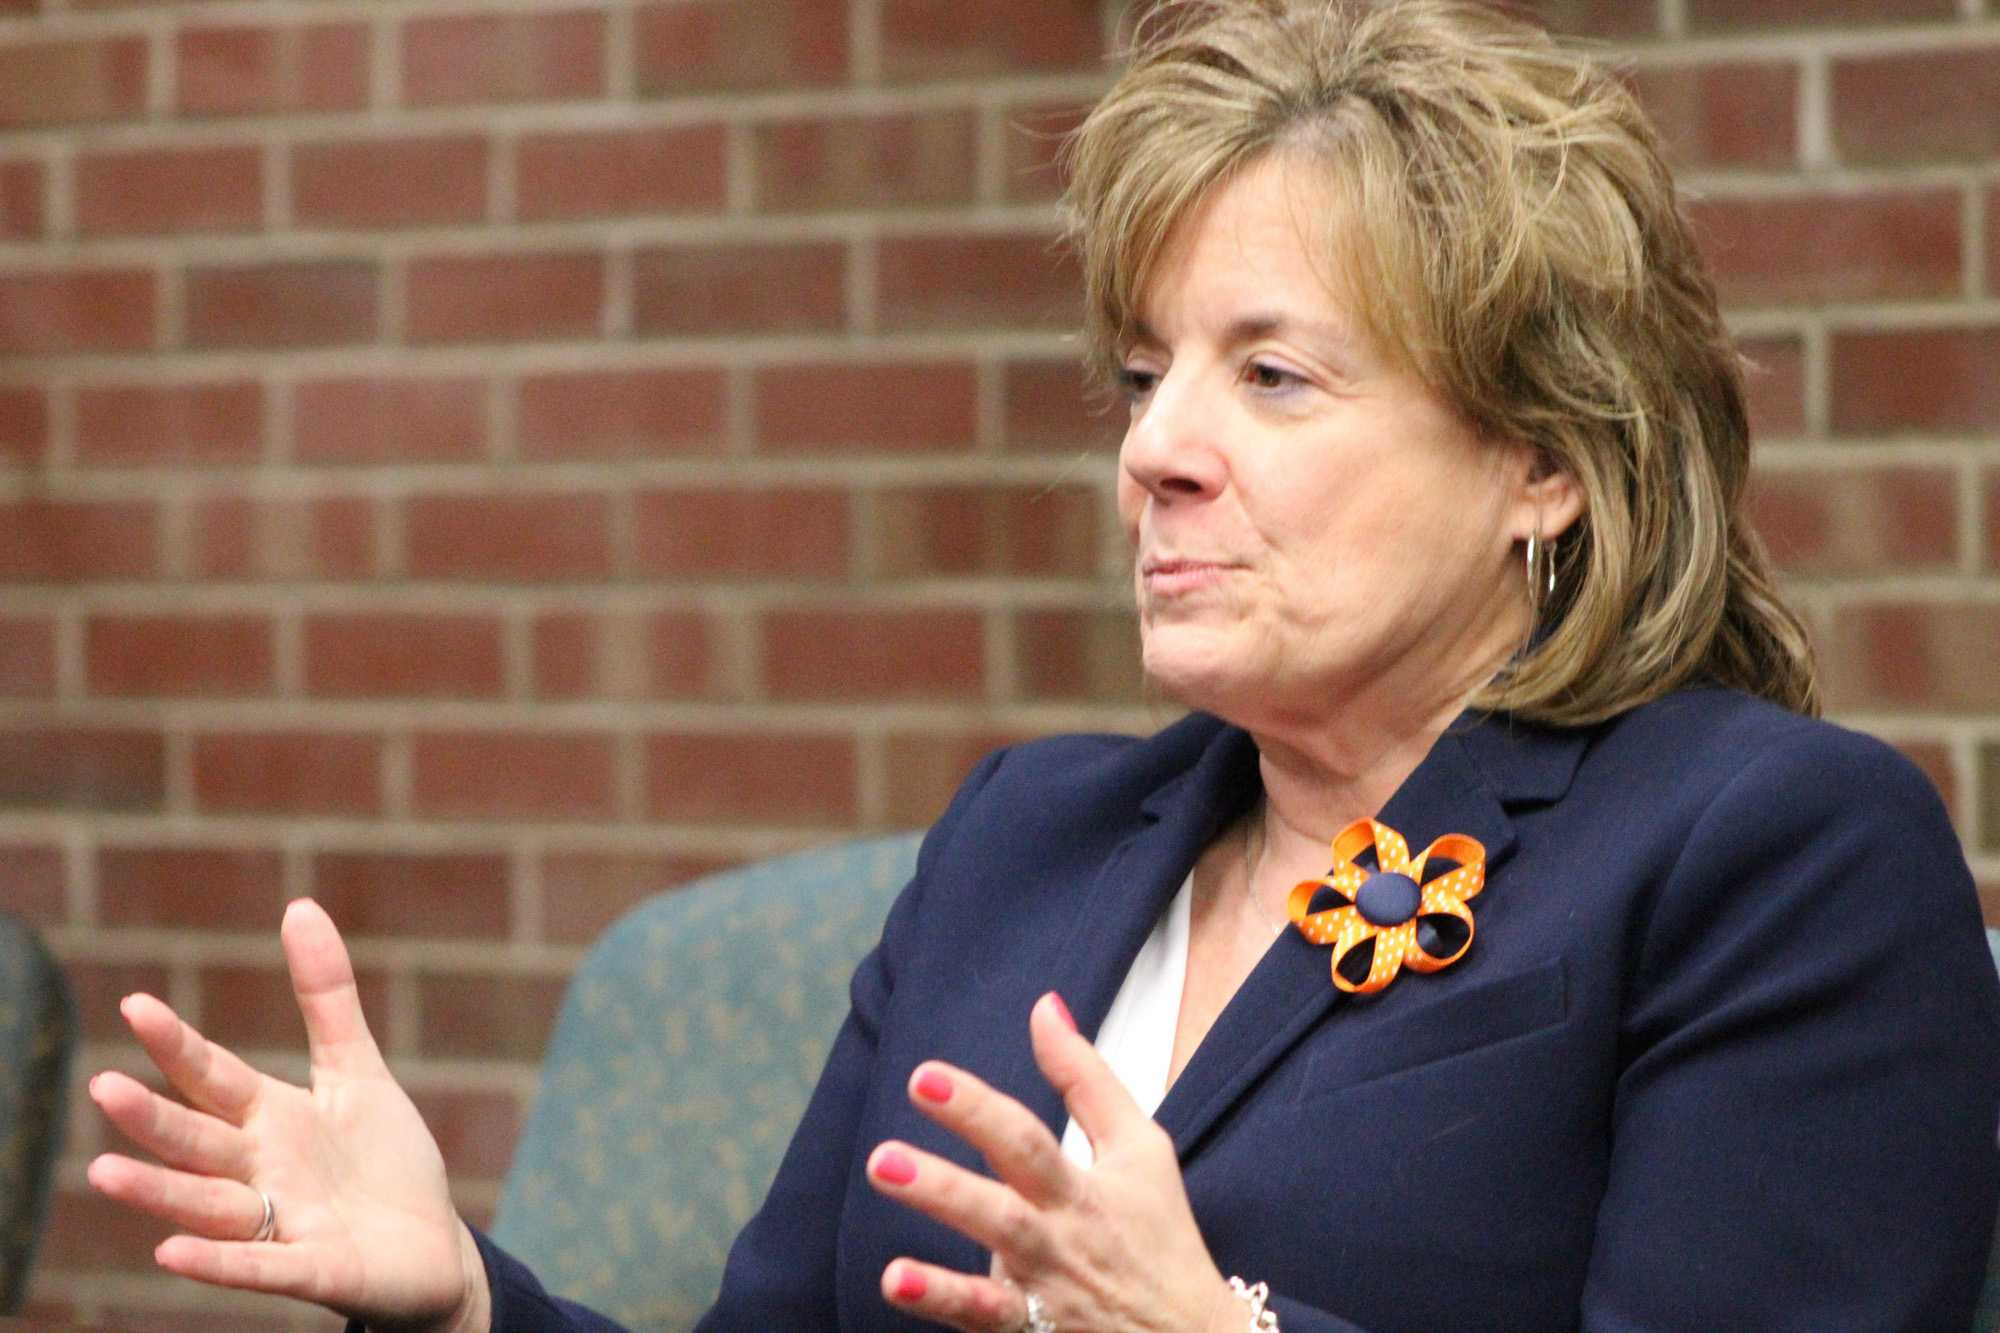 Interim Chancellor Barbara Wilson speaks with The Daily Illini's Editorial Board on Jan. 14 at the University of Illinois-Chicago campus. Wilson discussed the University's search for a new athletic director, among many other University-related matters.